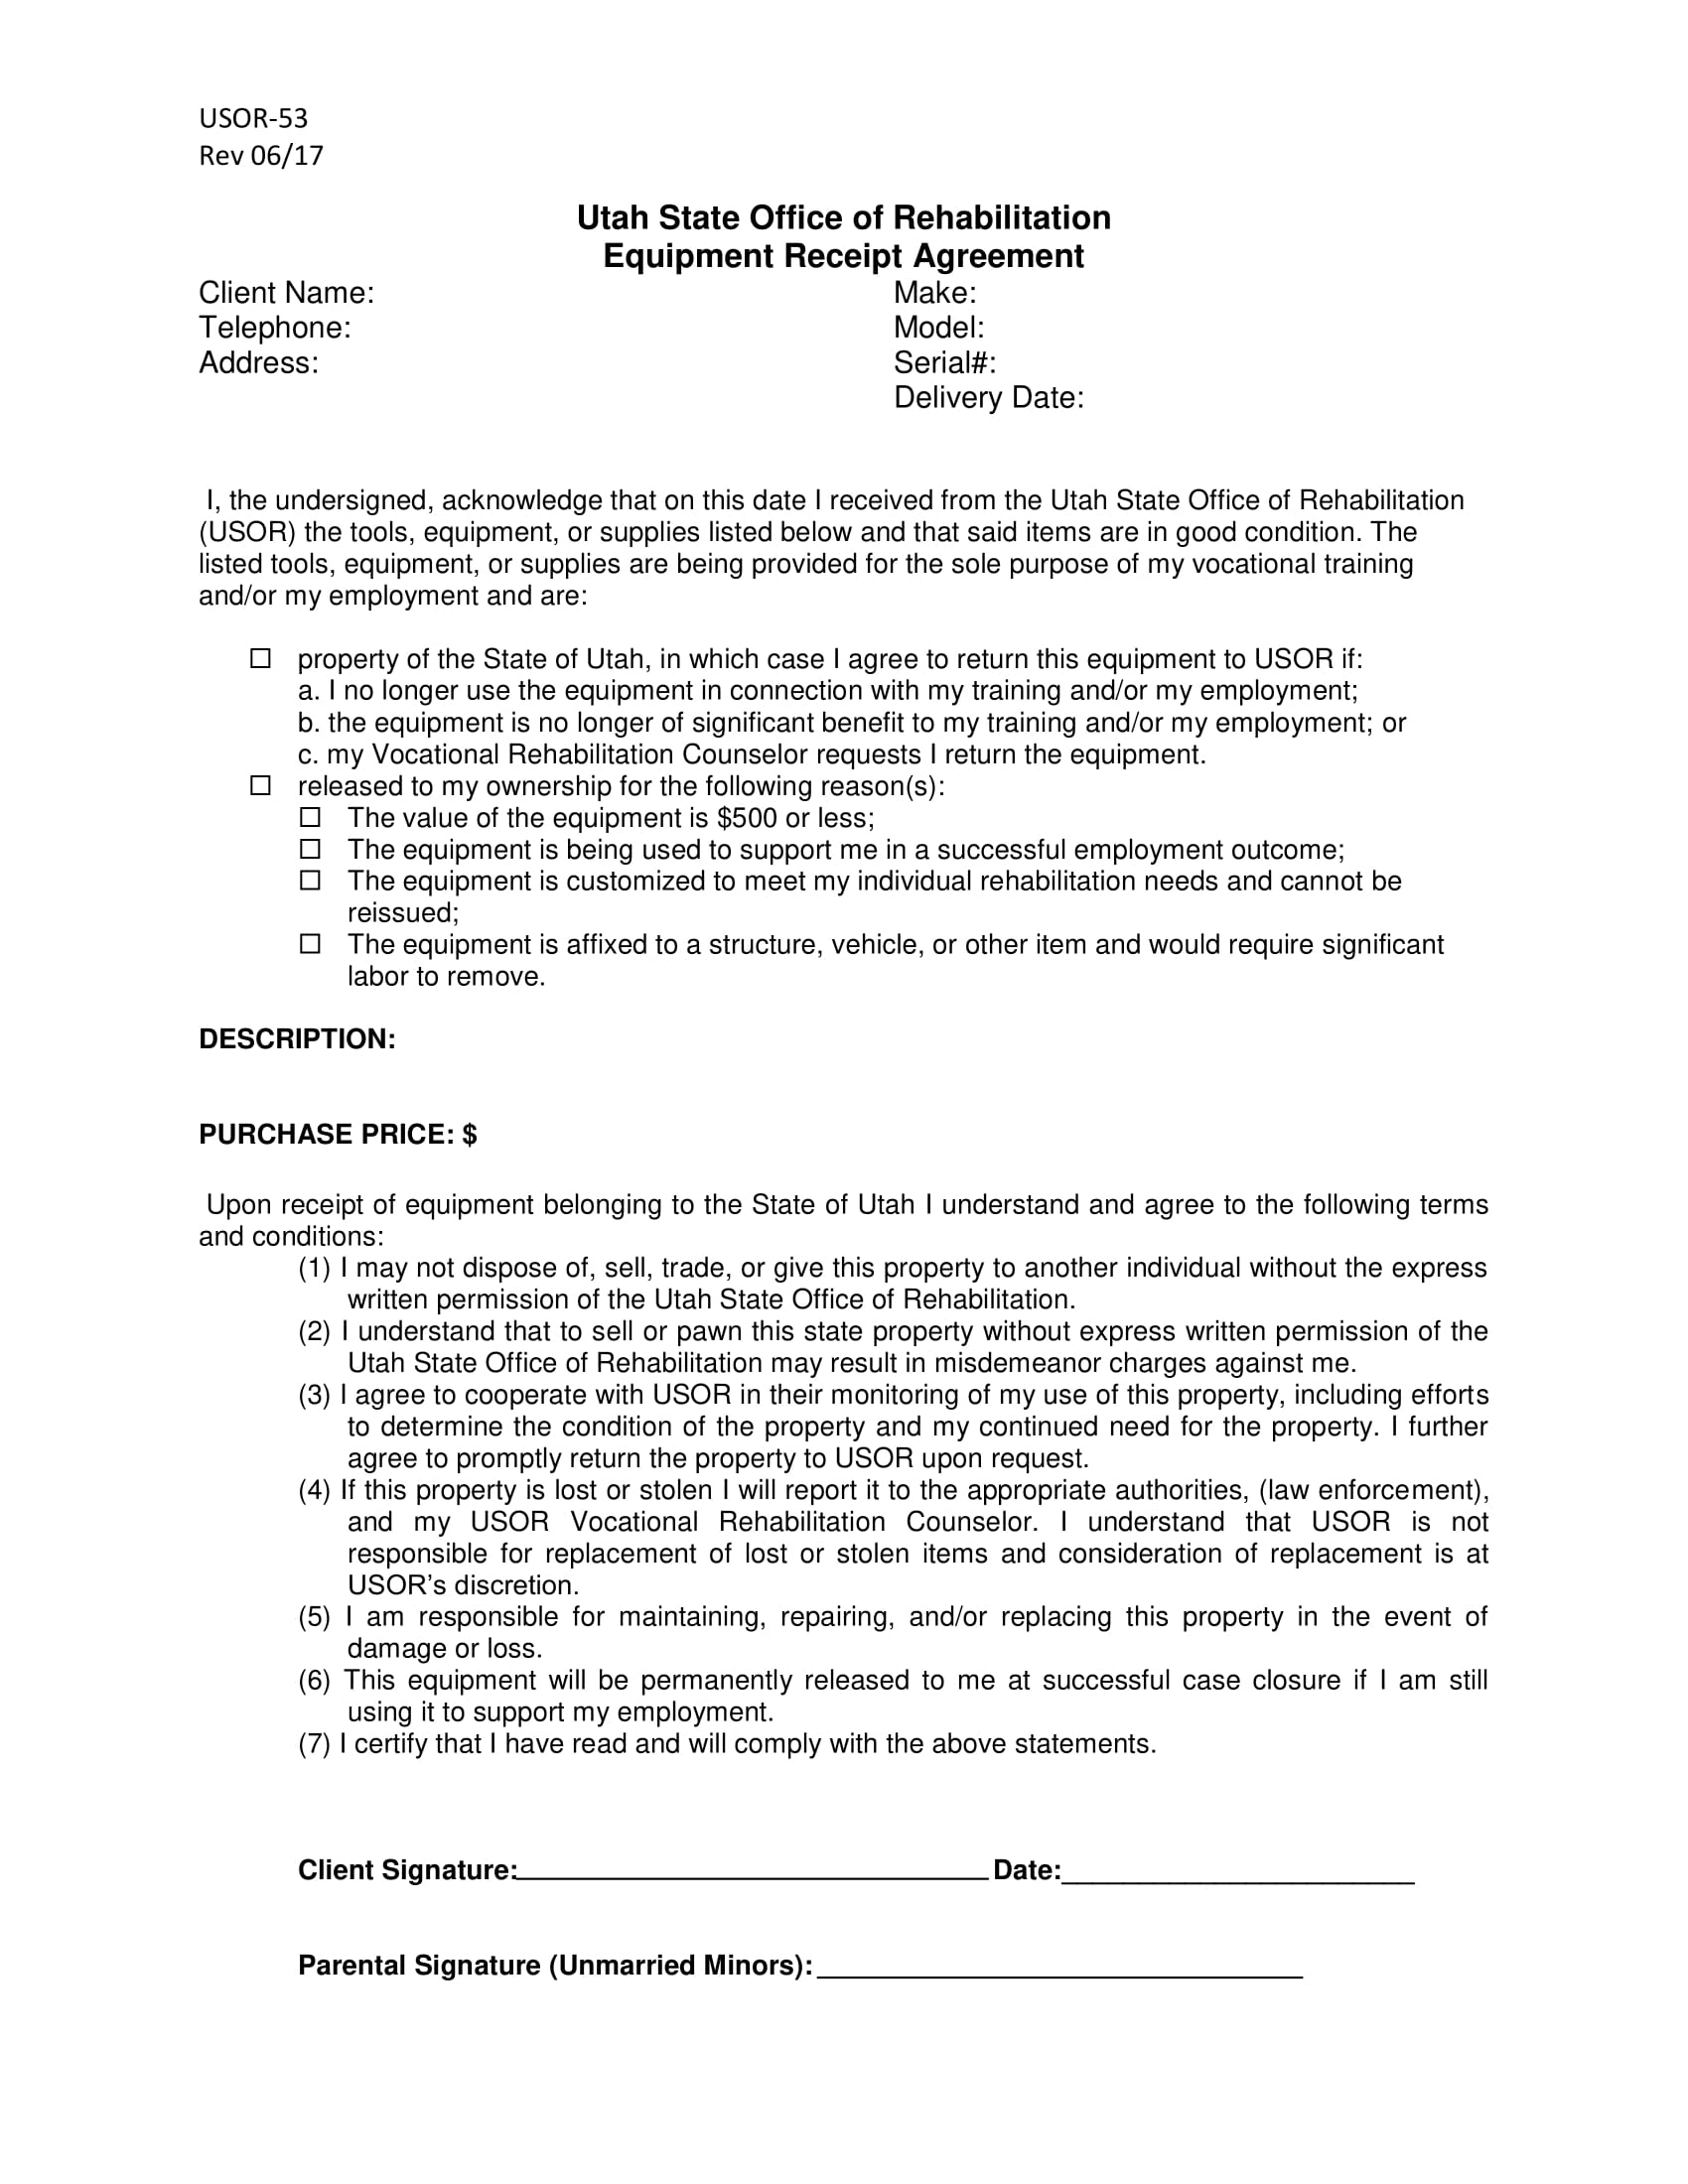 equipment receipt agreement contract form 1